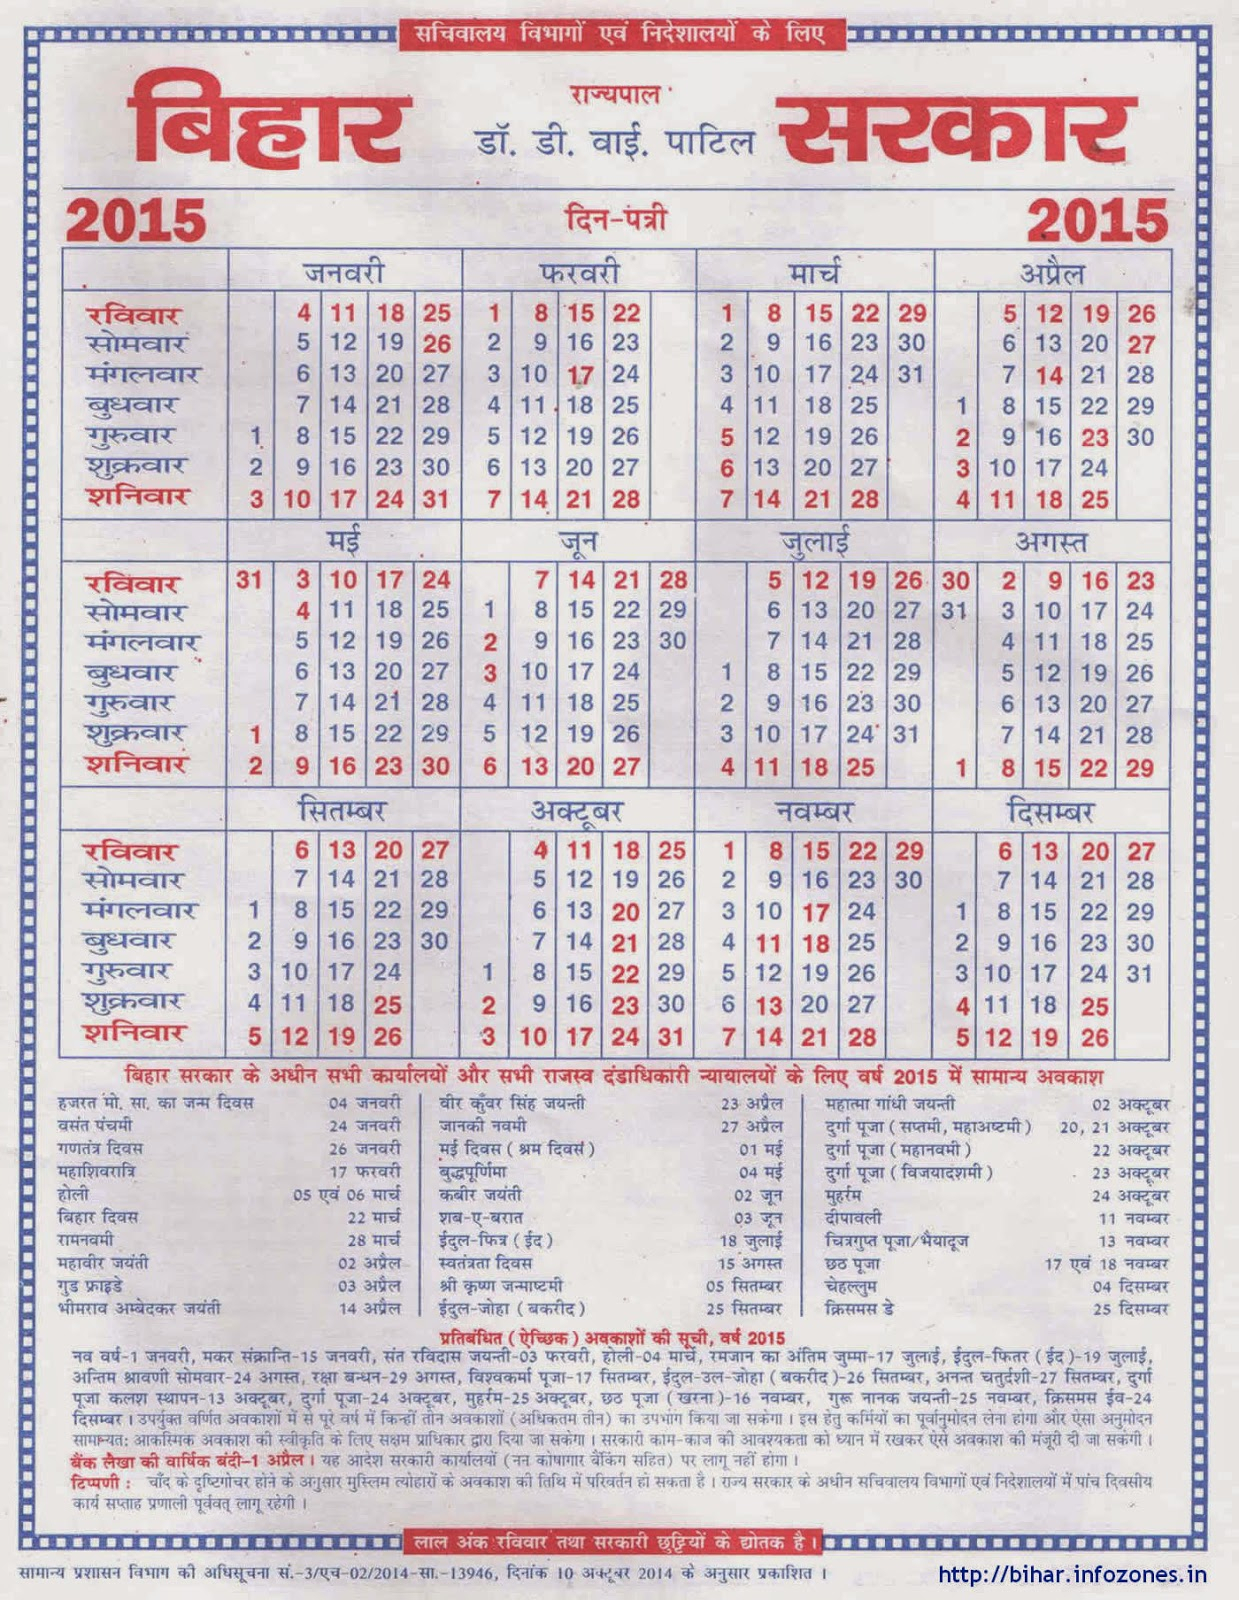 Bihar Government Calendar 2015 with Bihar Government Calendar